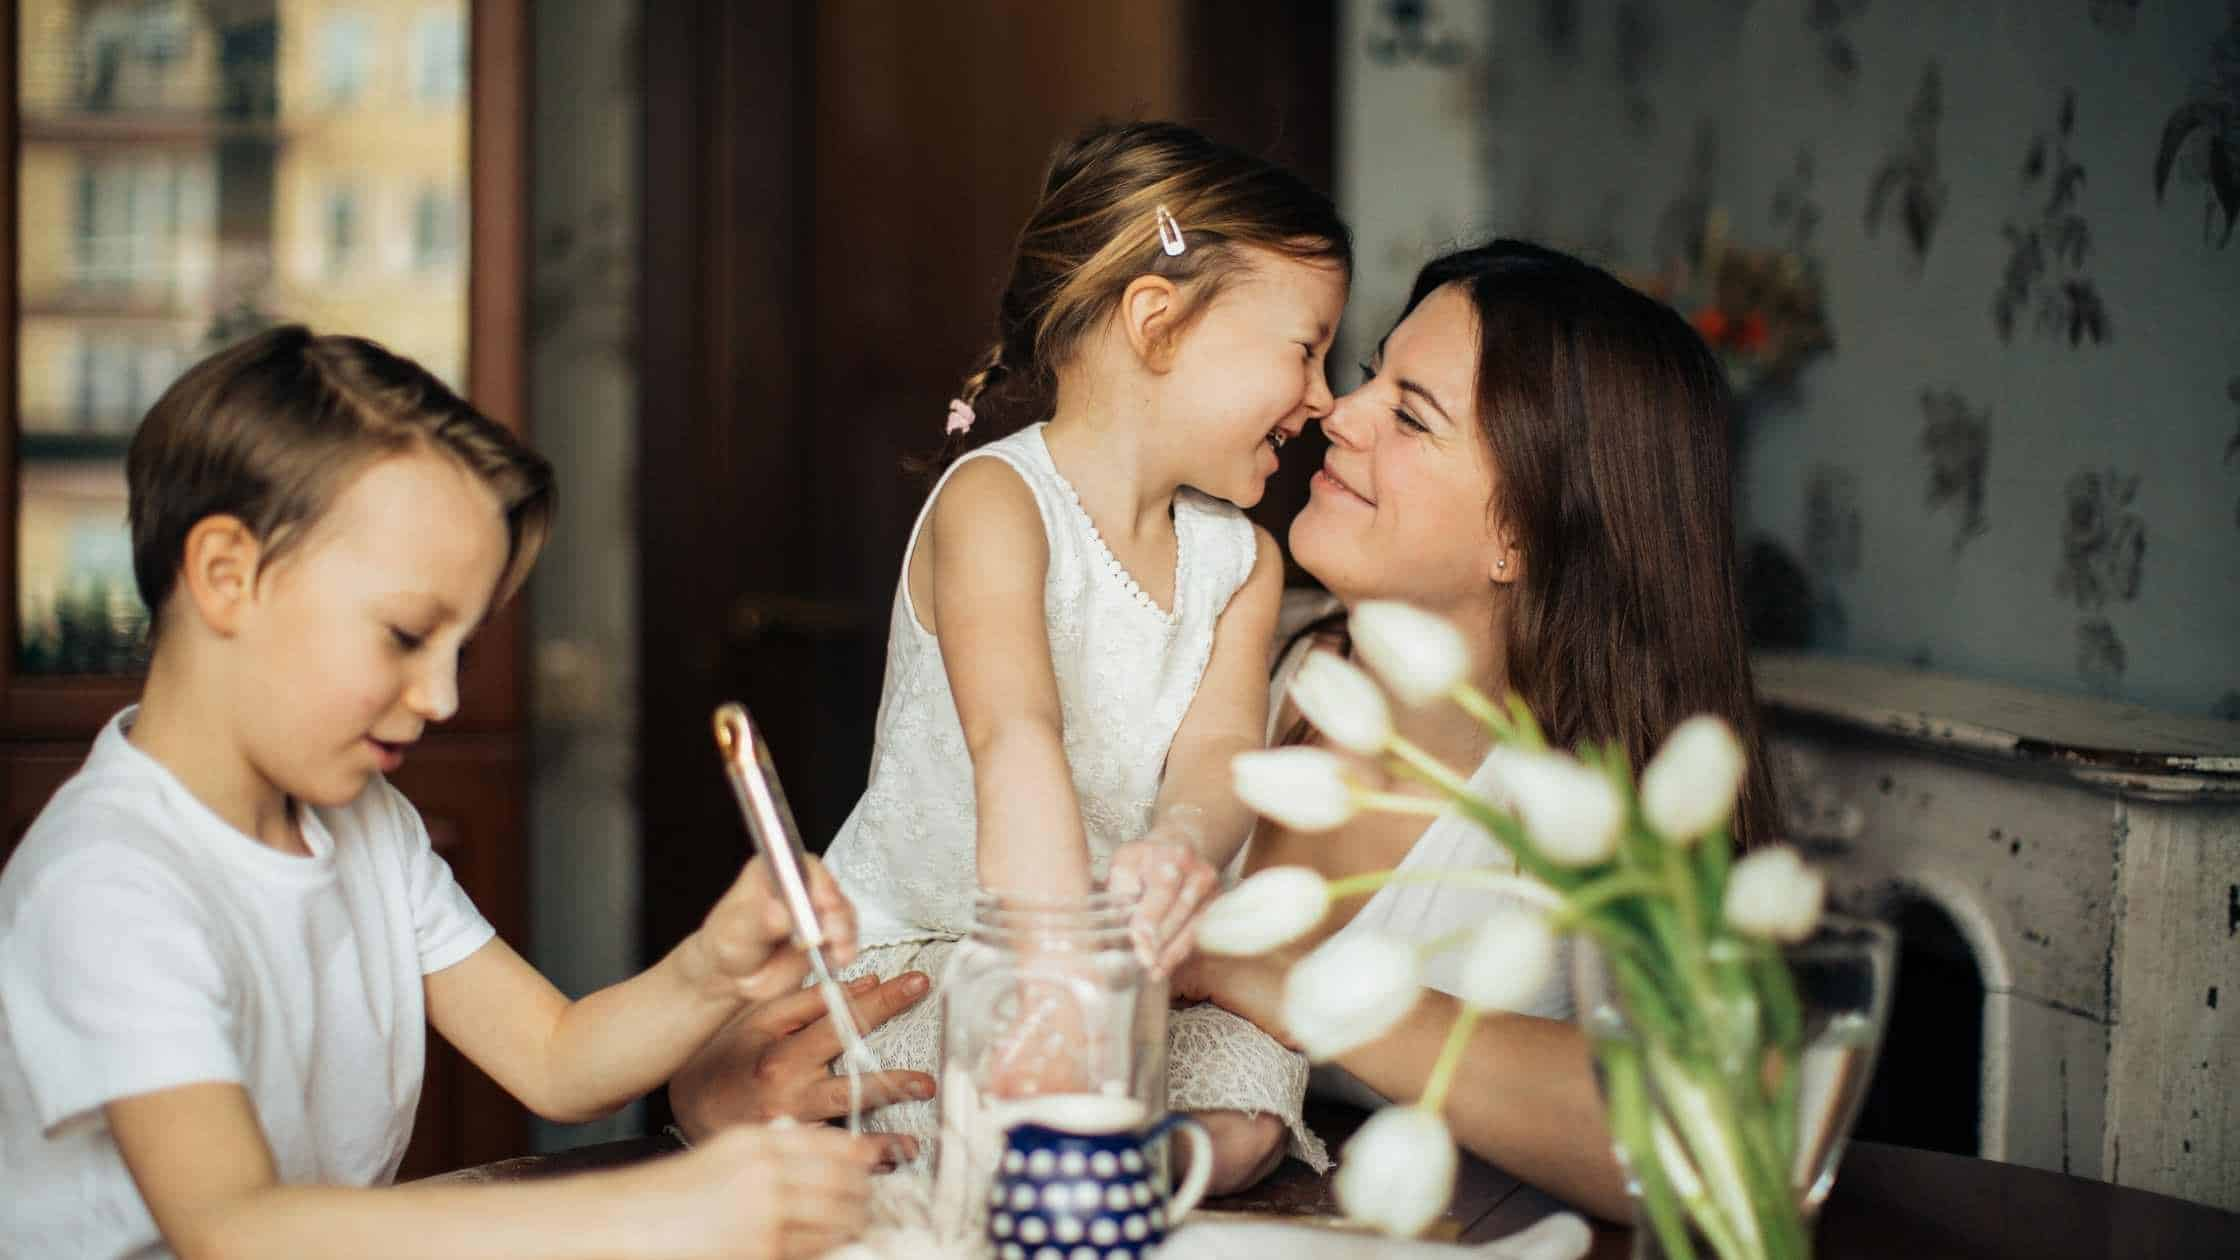 Mom sitting at table with her son and daughter while they work, daughter and mom give affection to each other